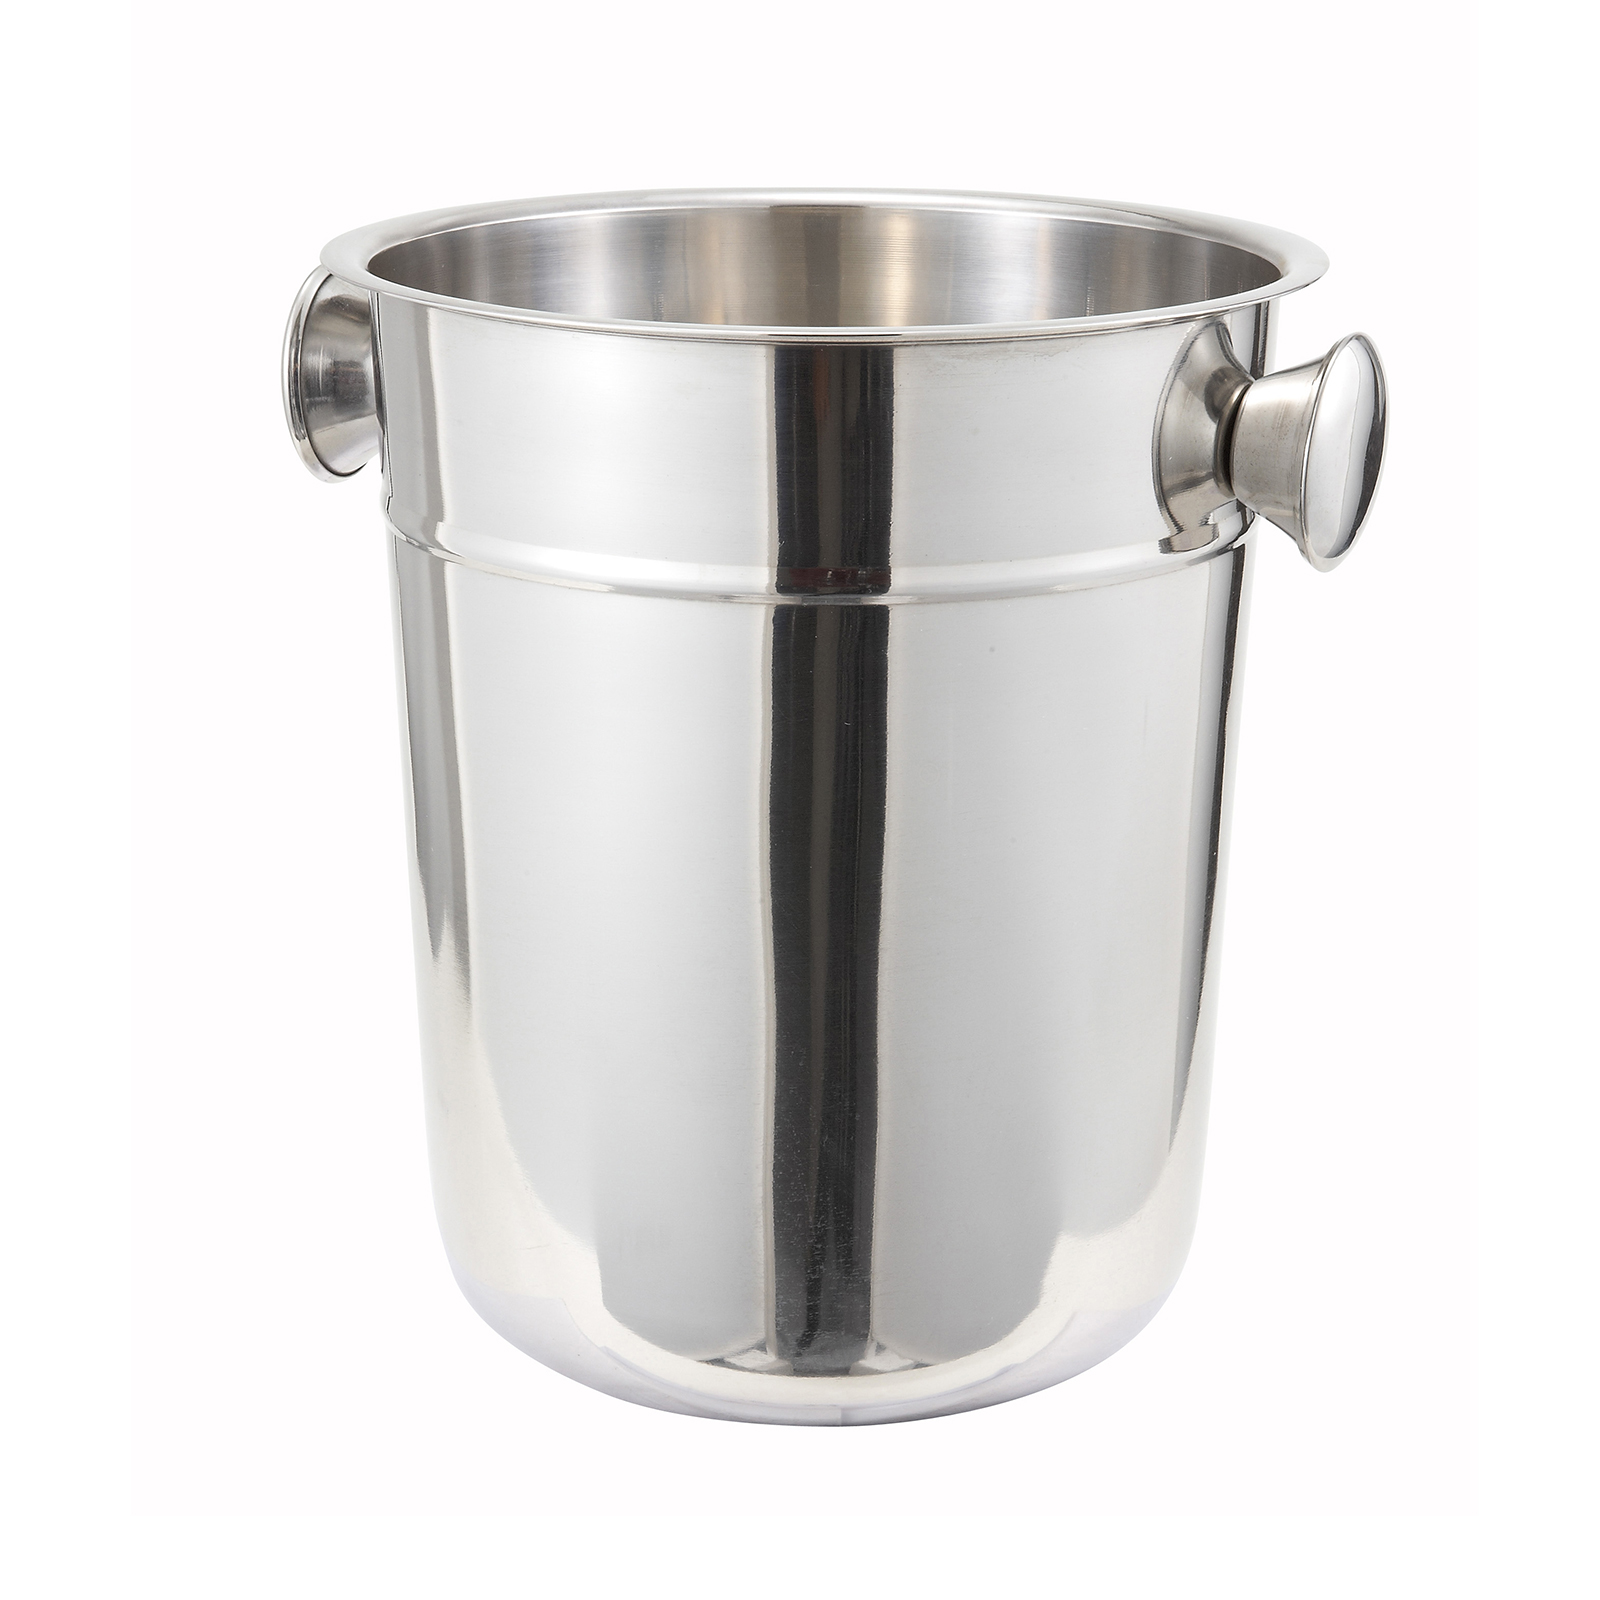 Winco WB-8 wine bucket / cooler